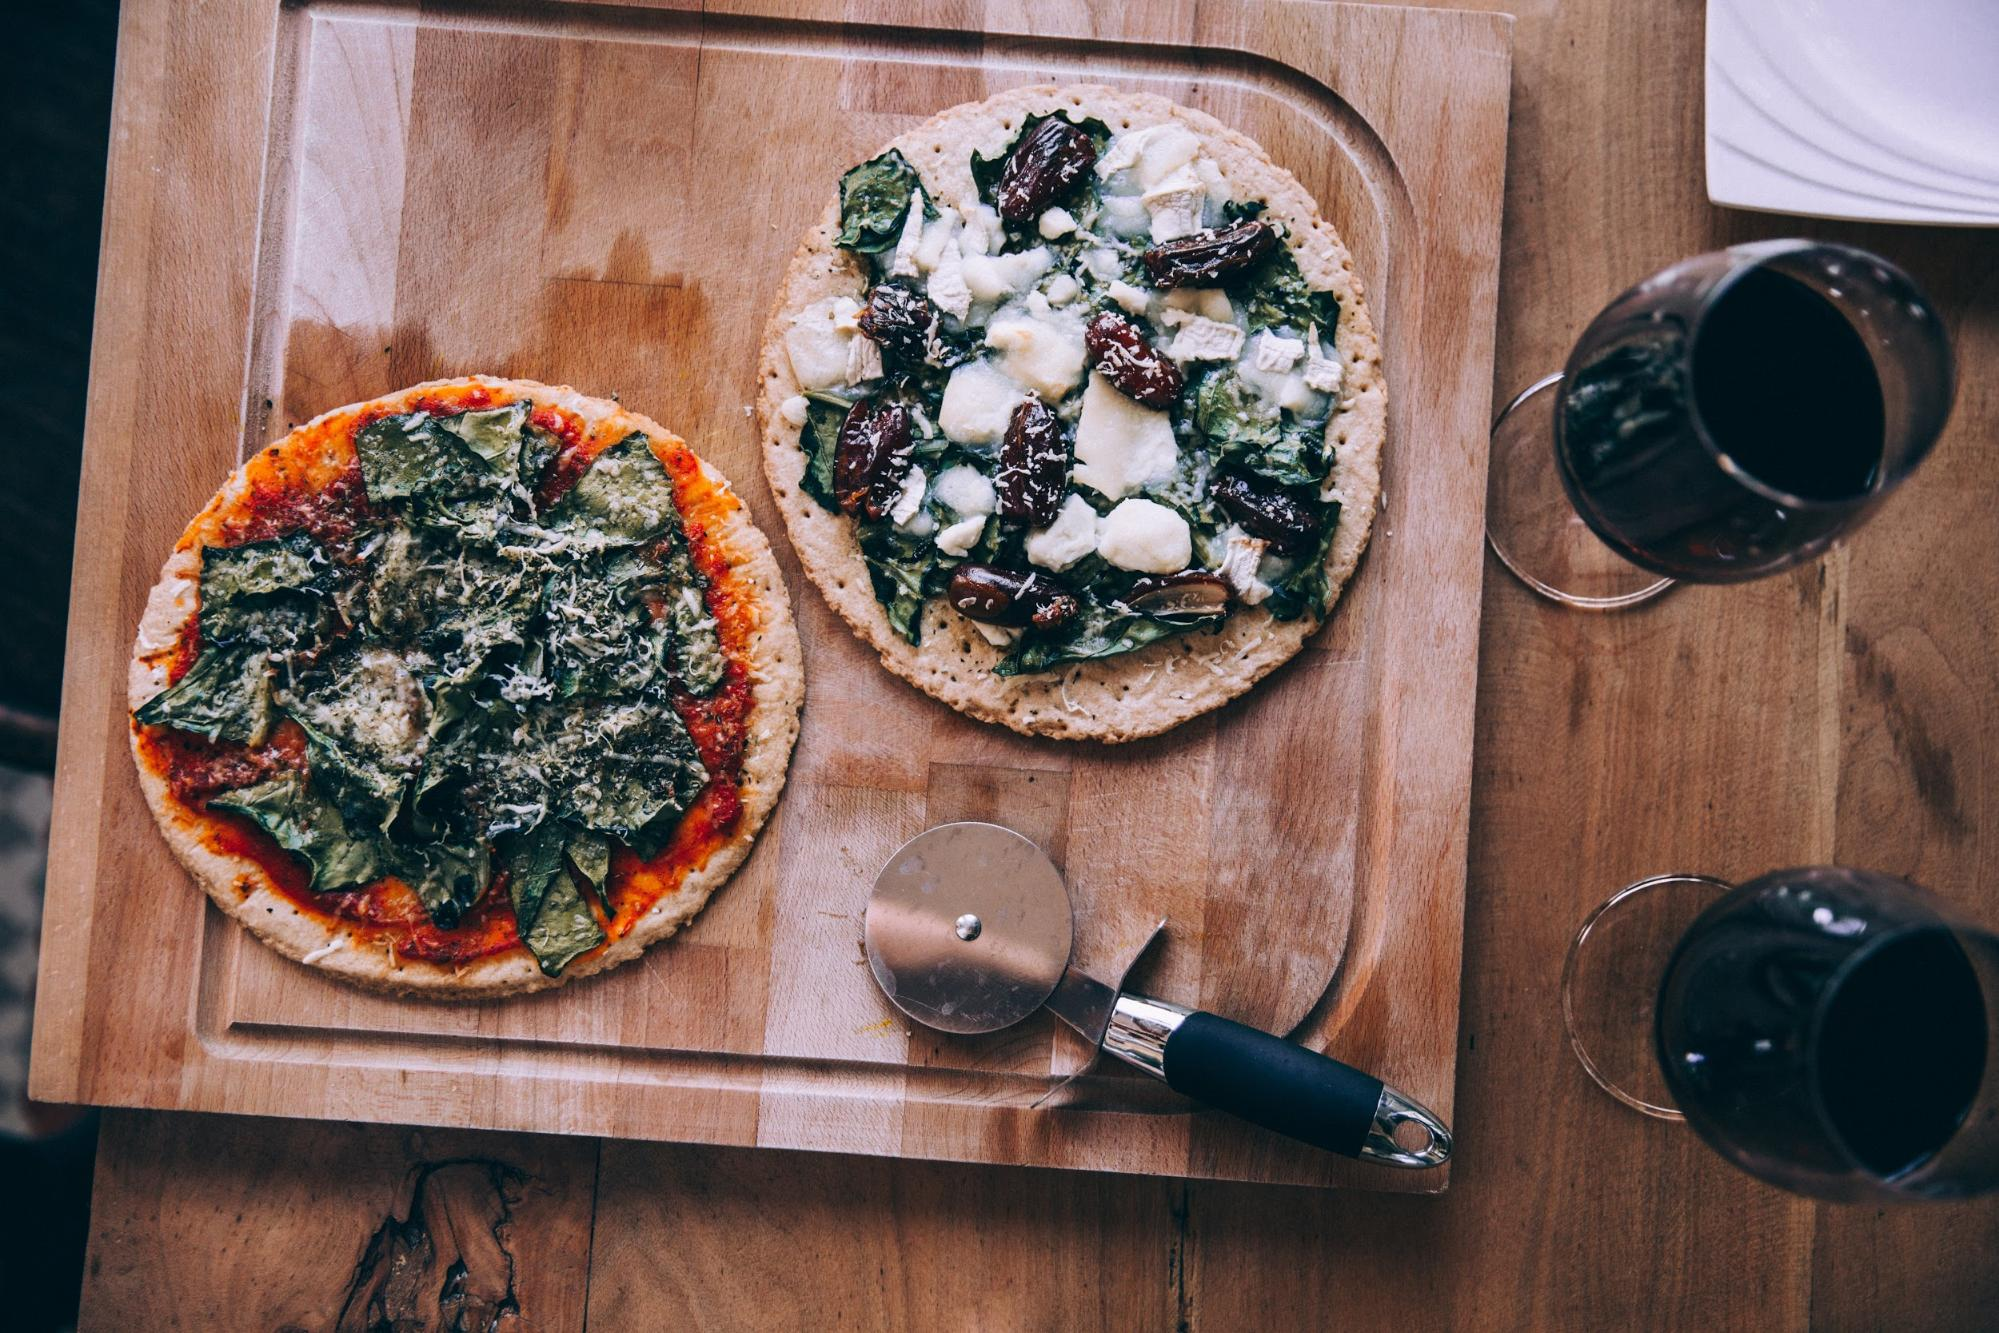 Pizza on a table; wine sommelier